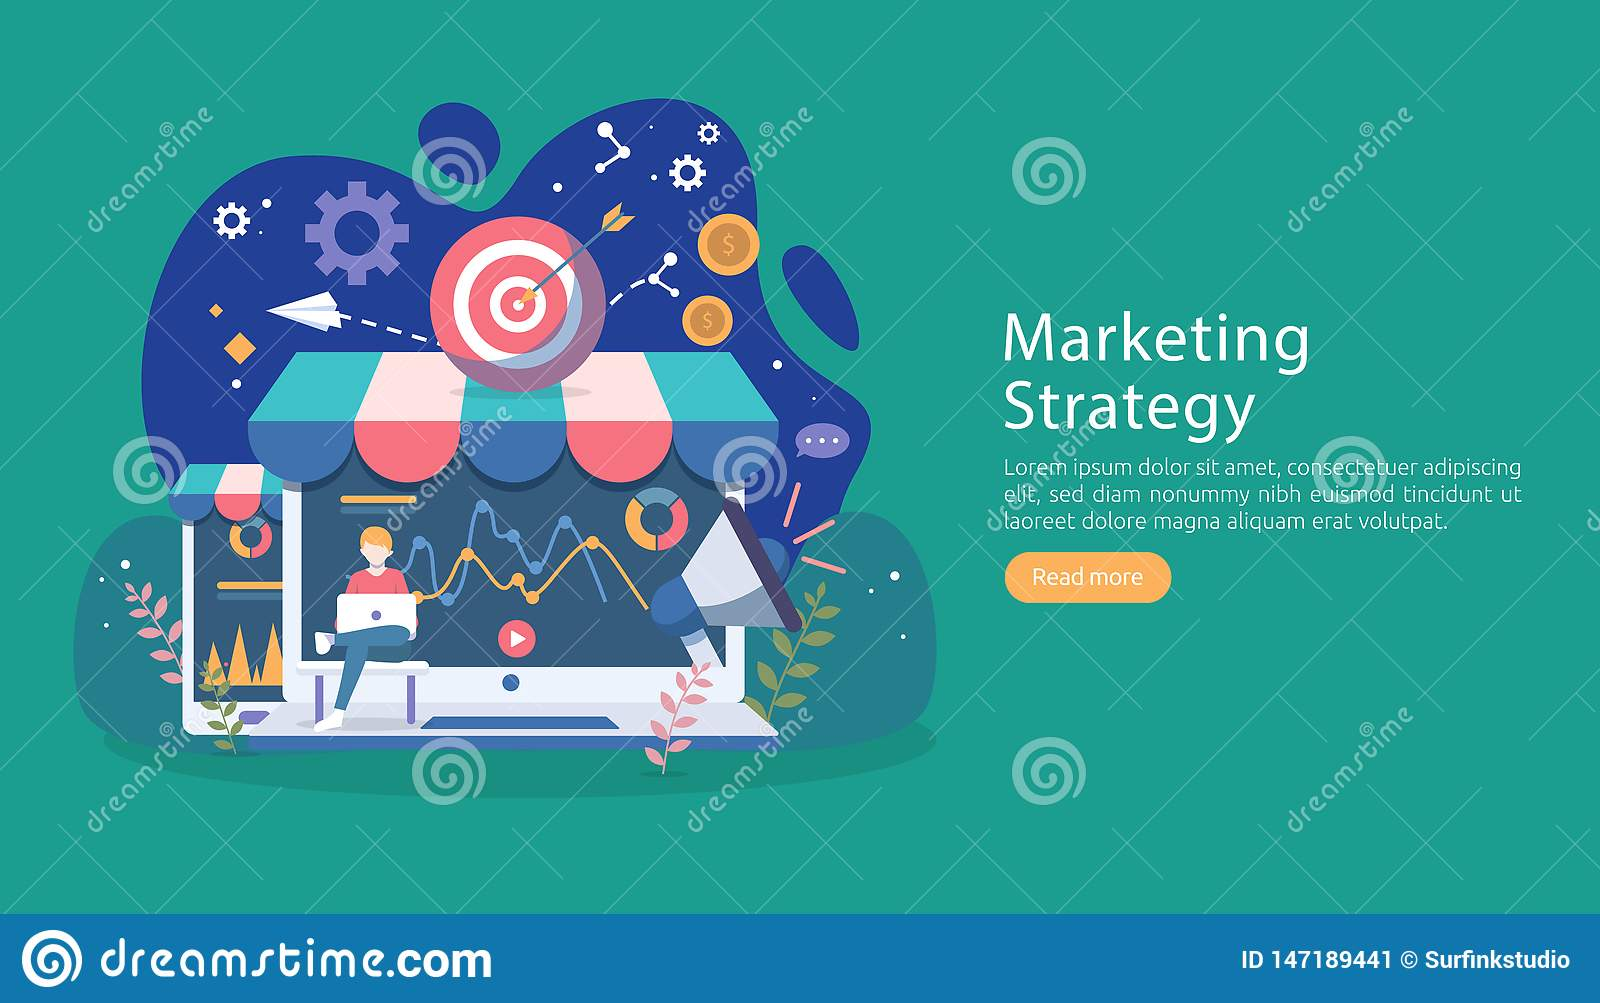 digital marketing strategy concept with tiny people character. online ecommerce business in modern flat design template for web